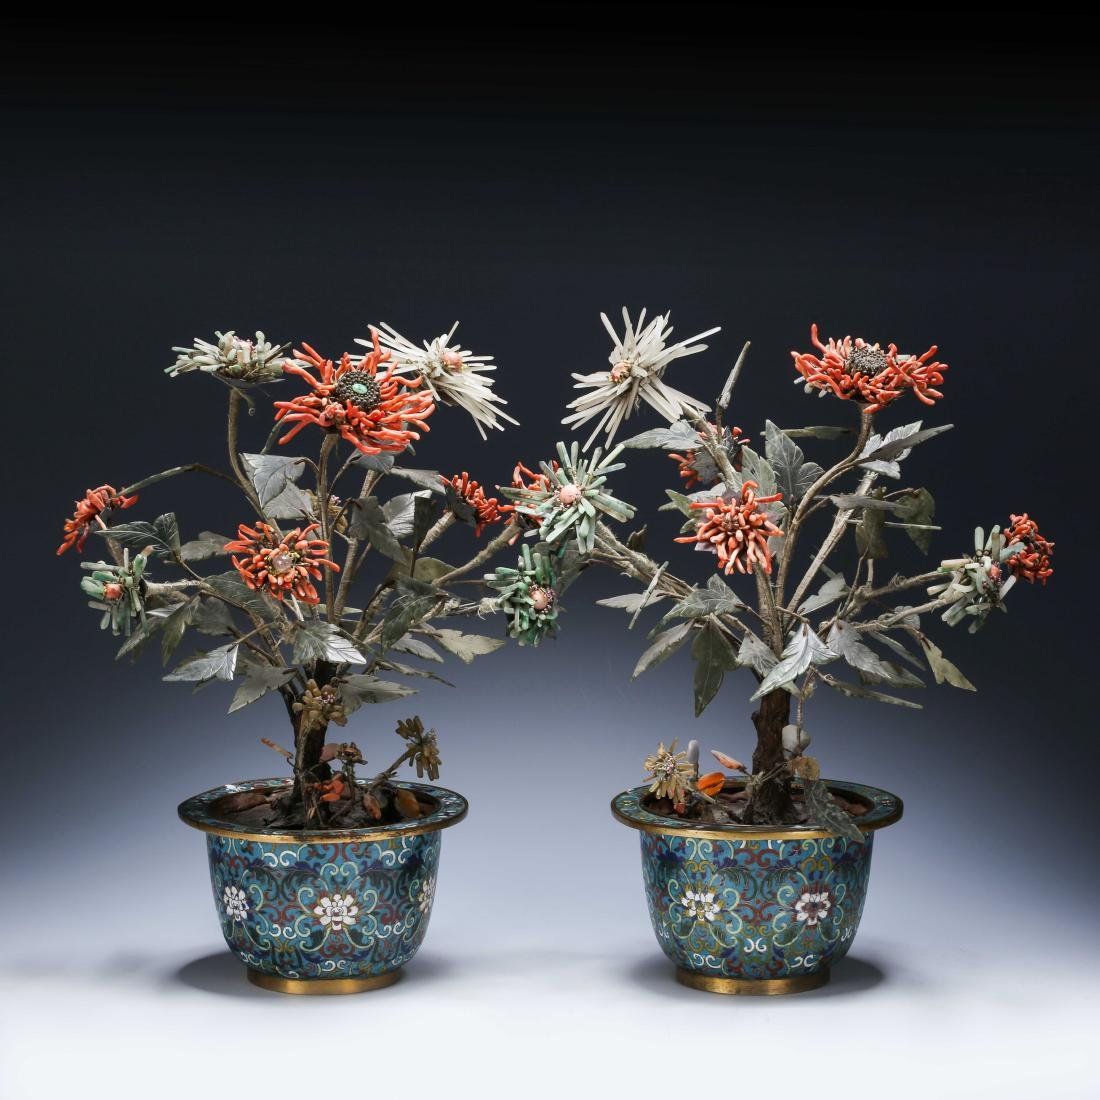 PAIR OF CHINESE CLOISONNE PLANTERS